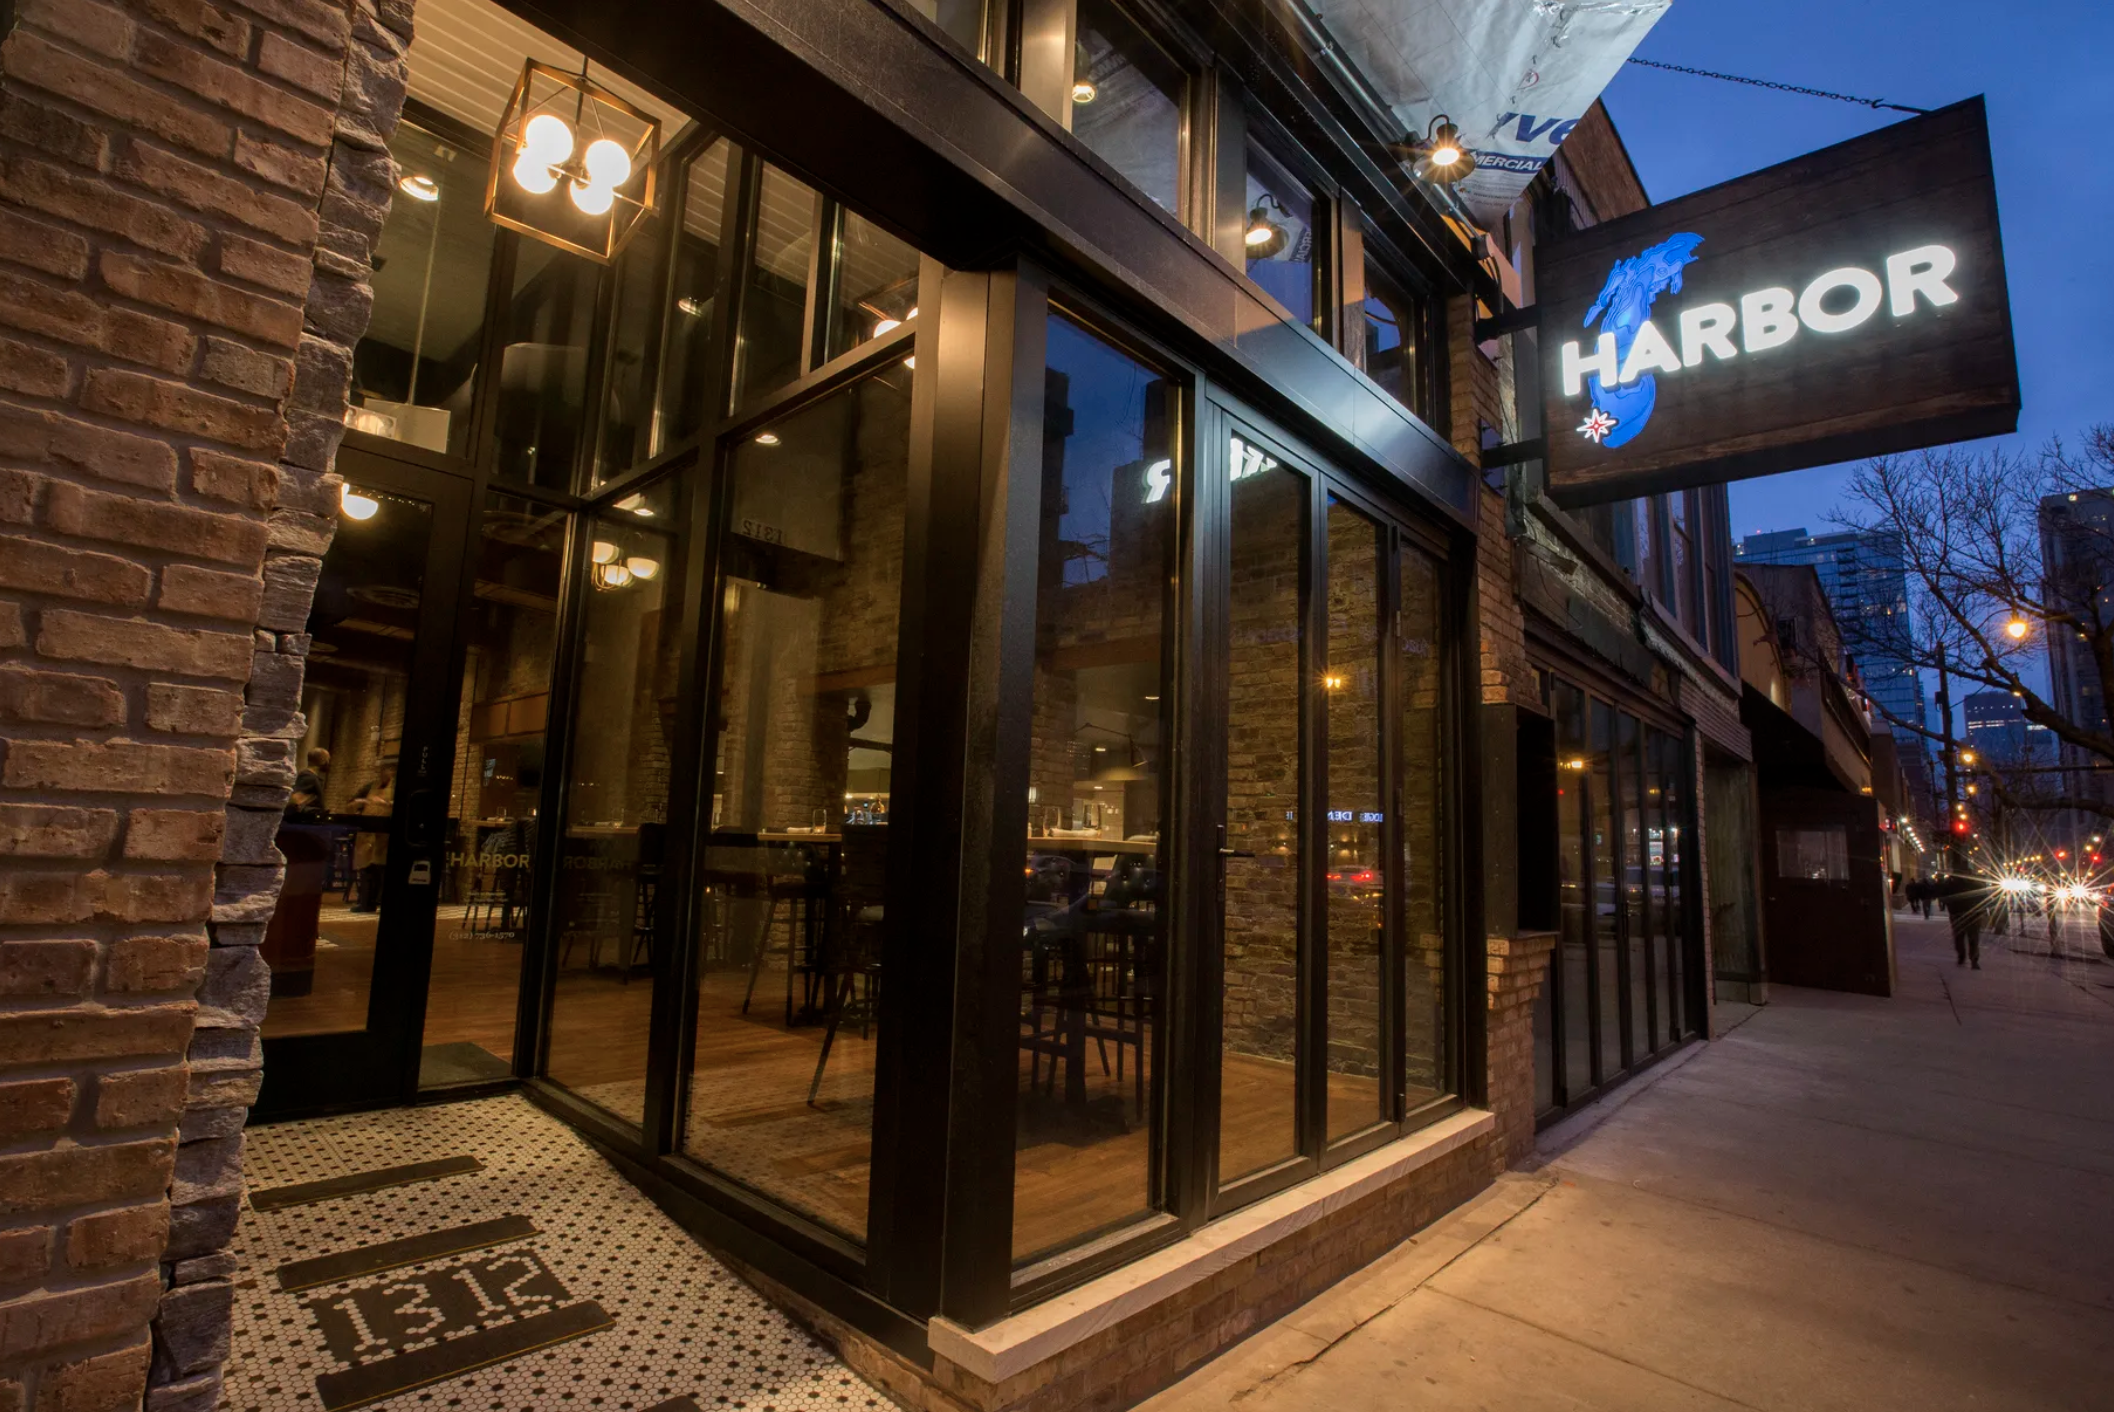 """A restaurant exterior with a sign that reads """"Harbor"""" over an outline of the Great Lakes"""